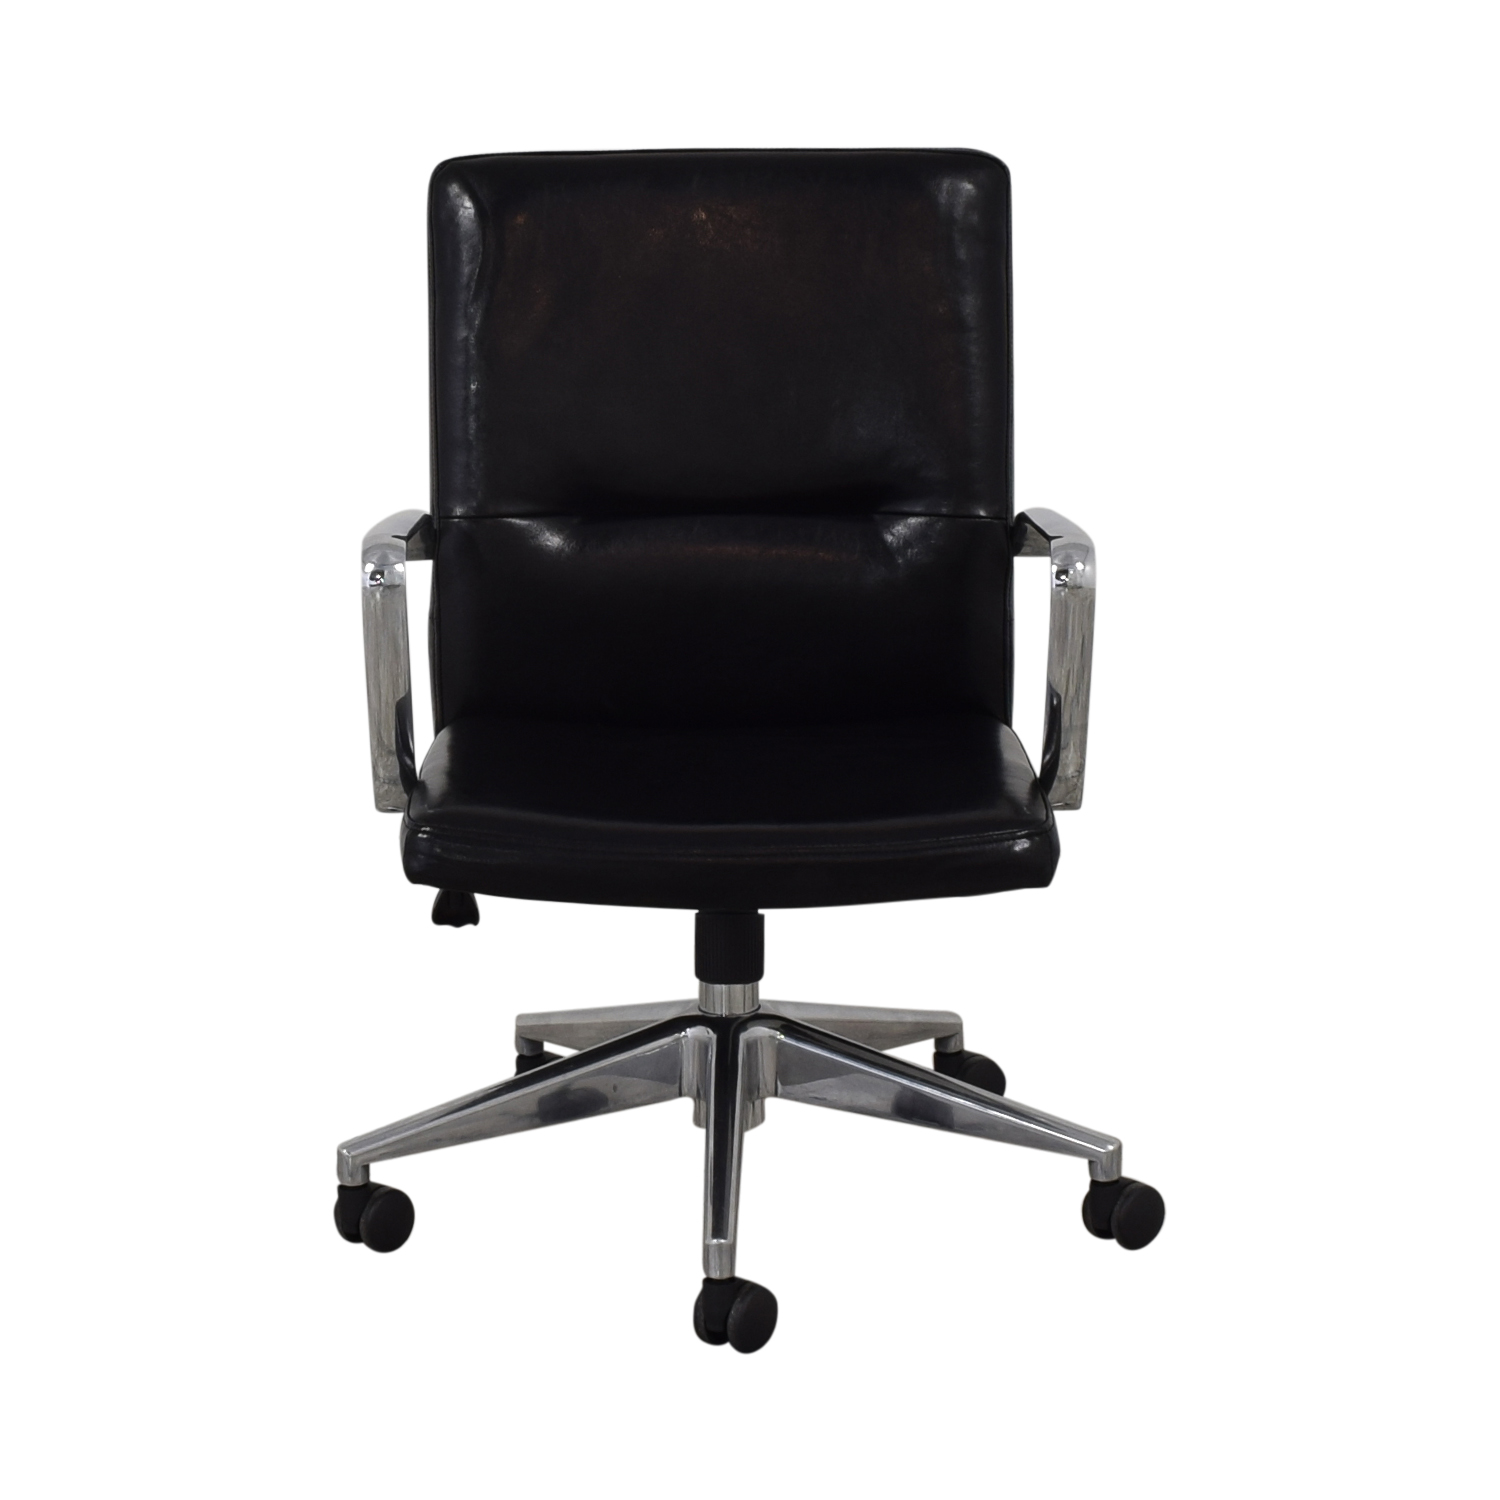 Crate & Barrel Crate & Barrel Office Chair black & silver